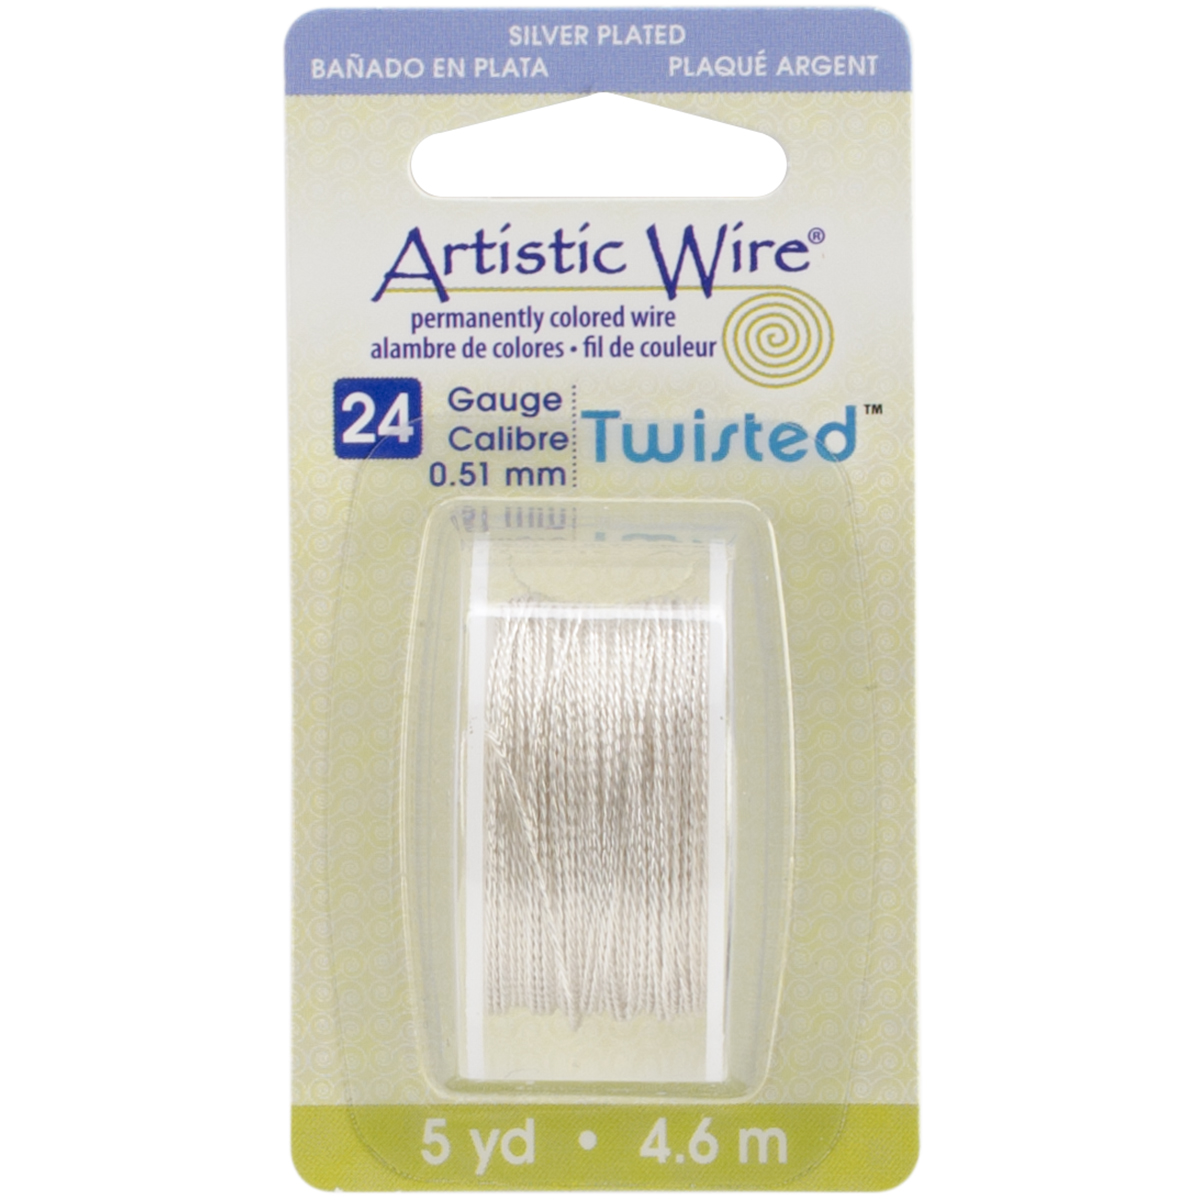 Artistic Wire Twisted-Non-Tarnish Silver - 24 Gauge, 5yd